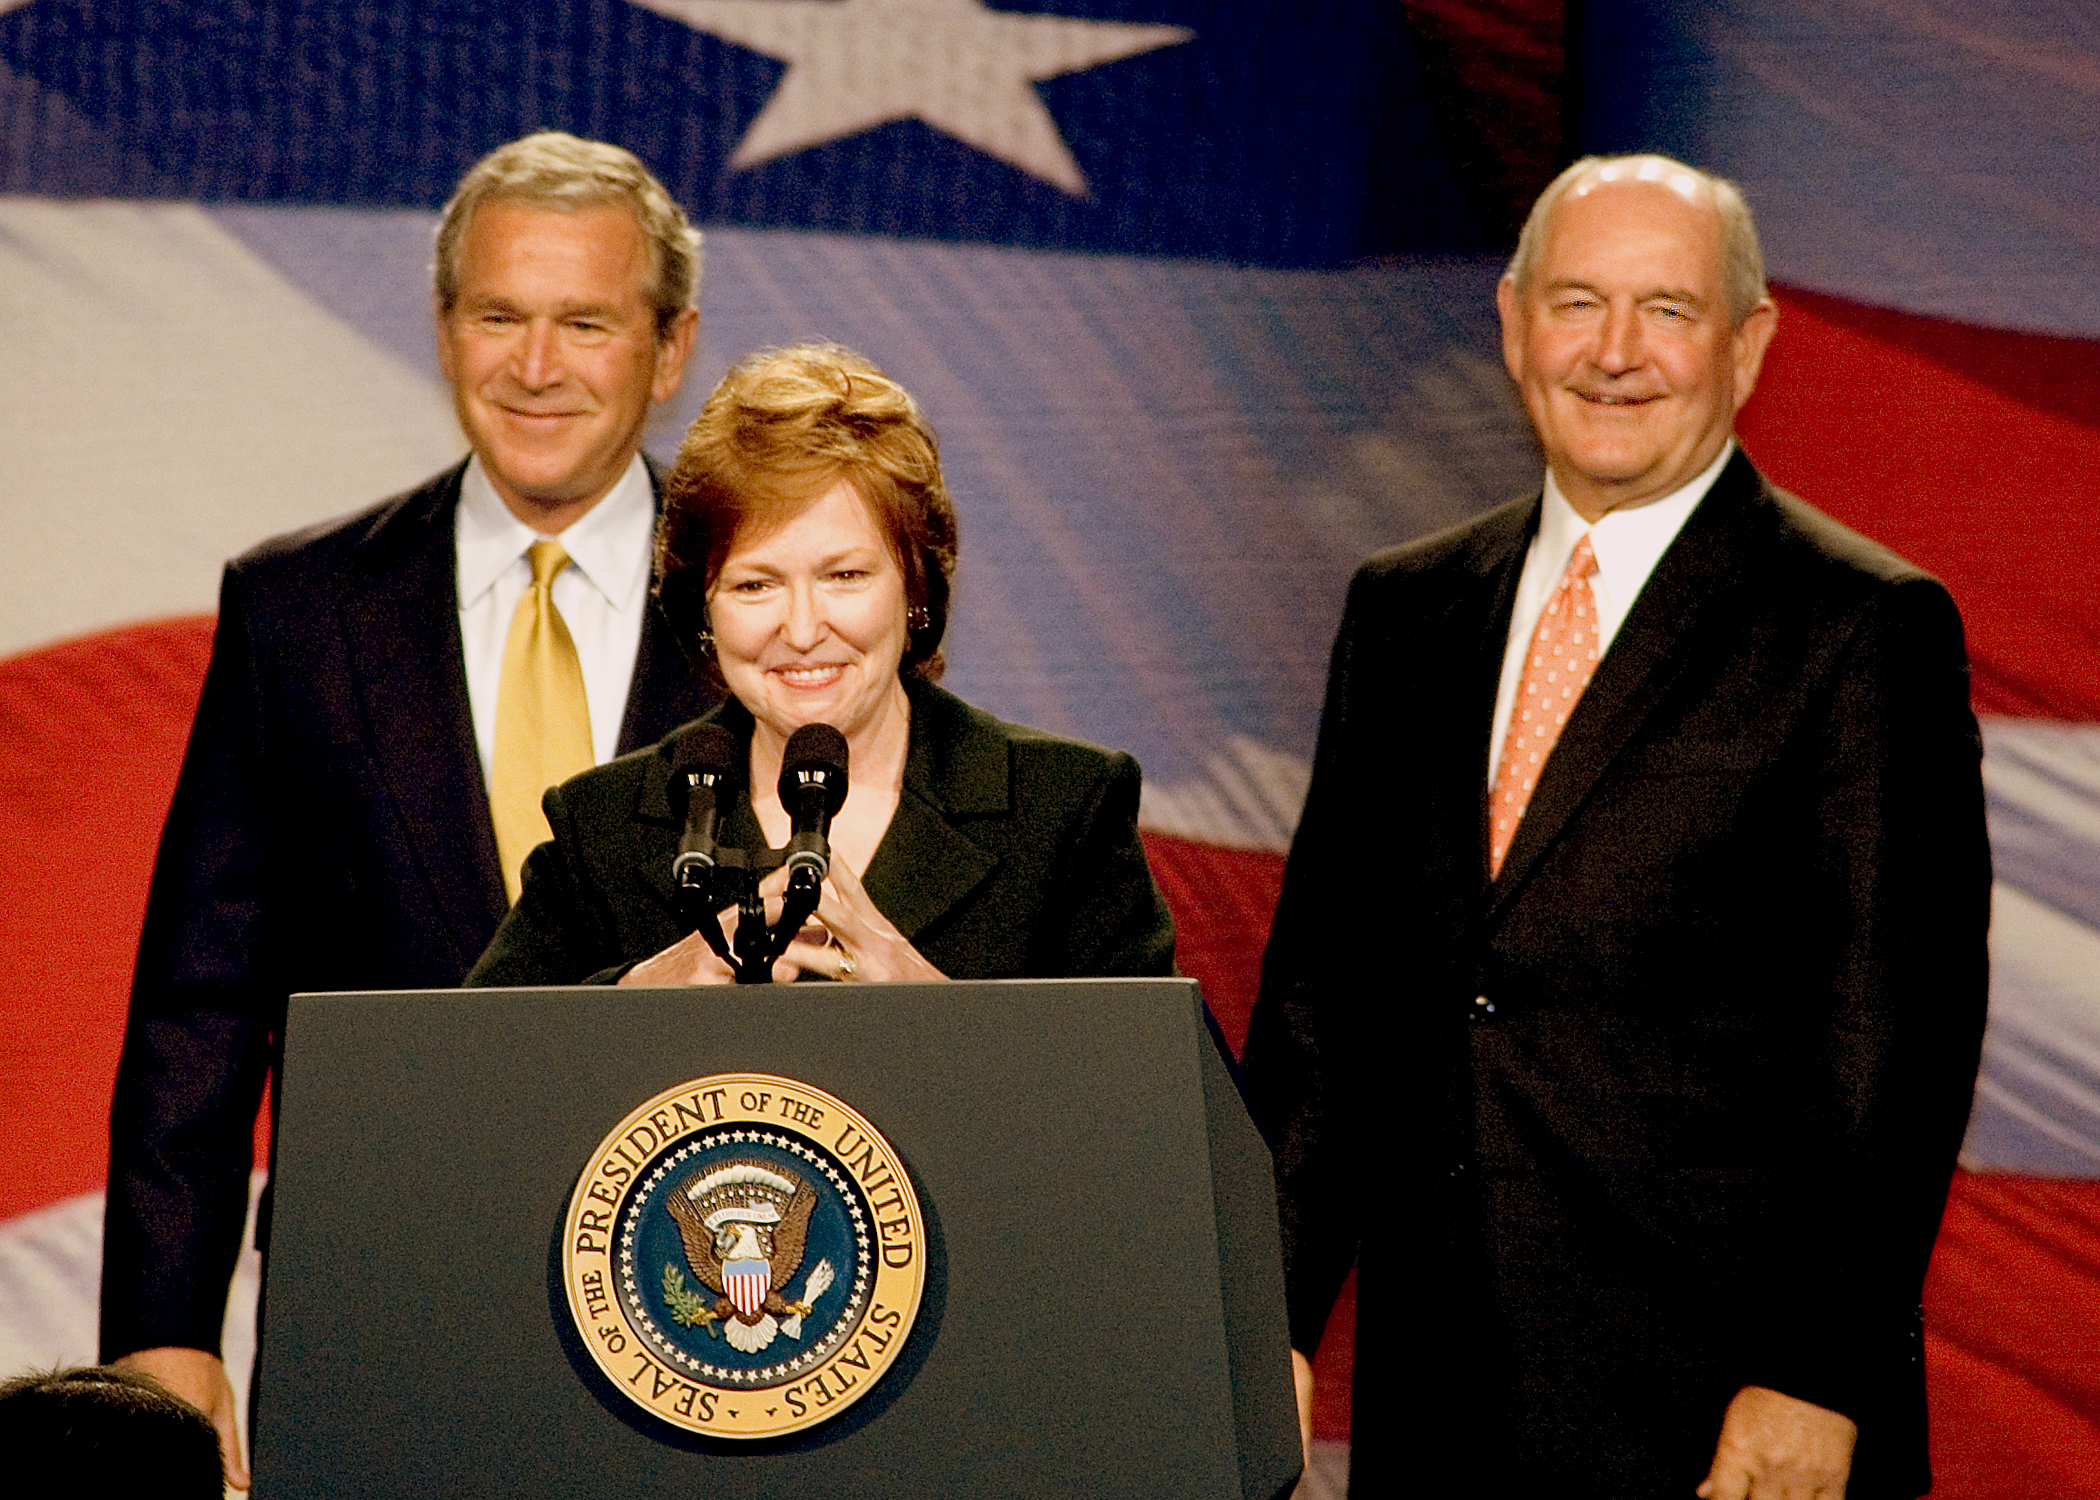 Times change: In 2006, Foundation Board Chairman Brenda Fitzgerald and Gov. Sonny Perdue welcomed President Bush at an event hosted by the Foundation in Cobb County. Today, Fitzgerald is the new CDC director and Perdue is U.S. Secretary of Agriculture!